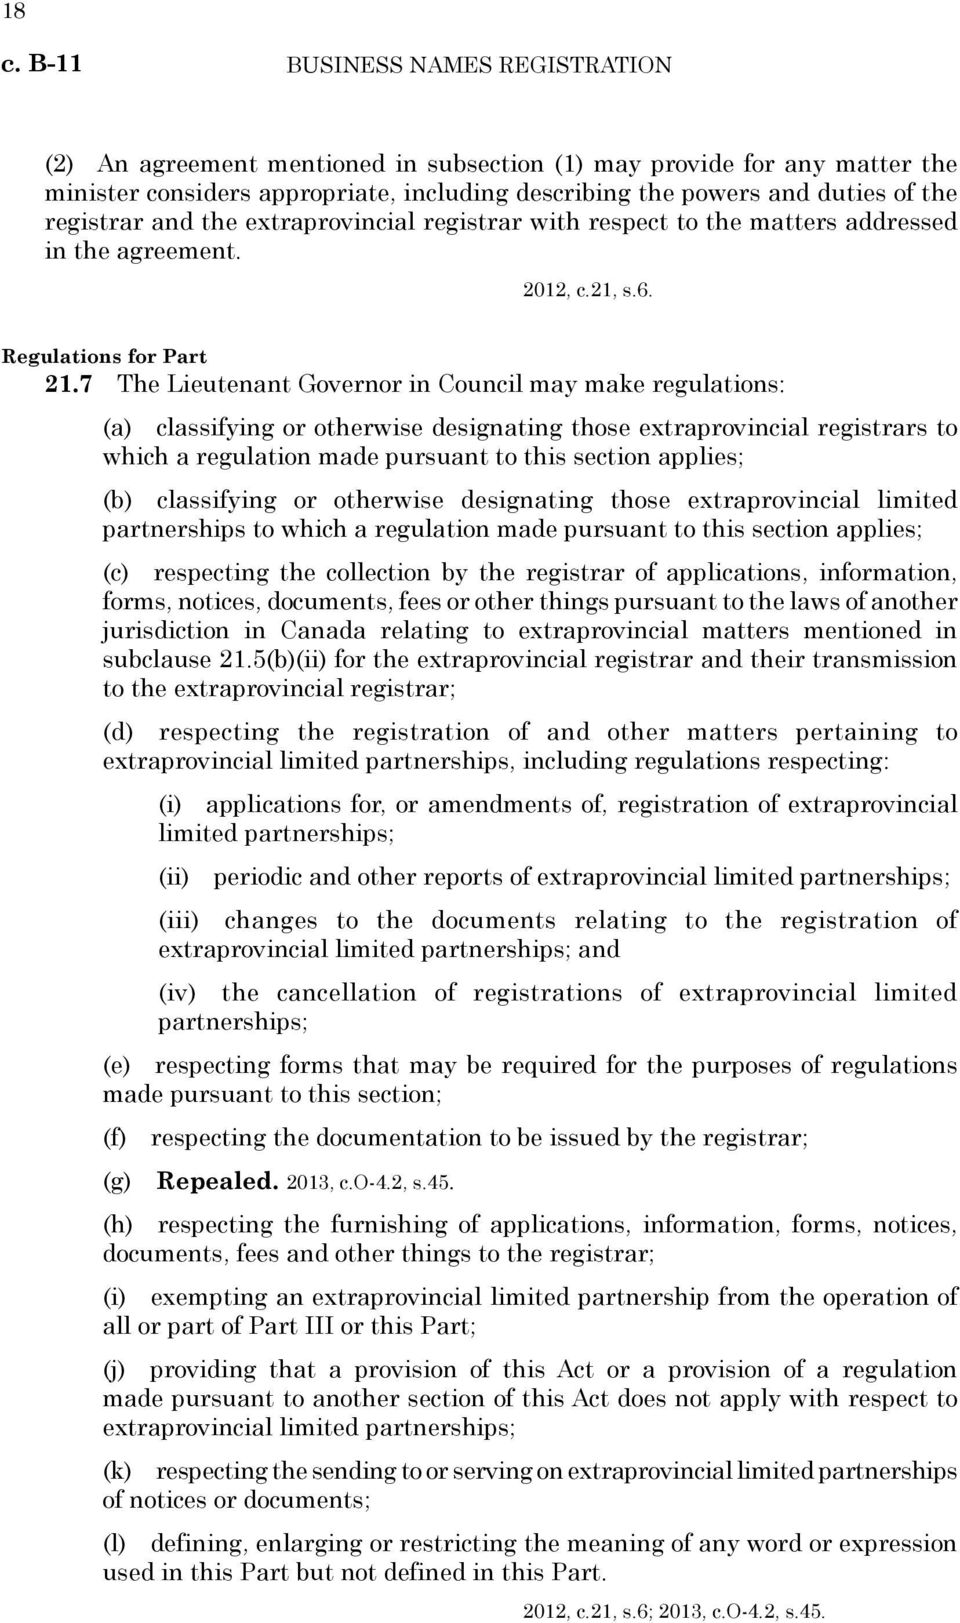 7 The Lieutenant Governor in Council may make regulations: (a) classifying or otherwise designating those extraprovincial registrars to which a regulation made pursuant to this section applies; (b)